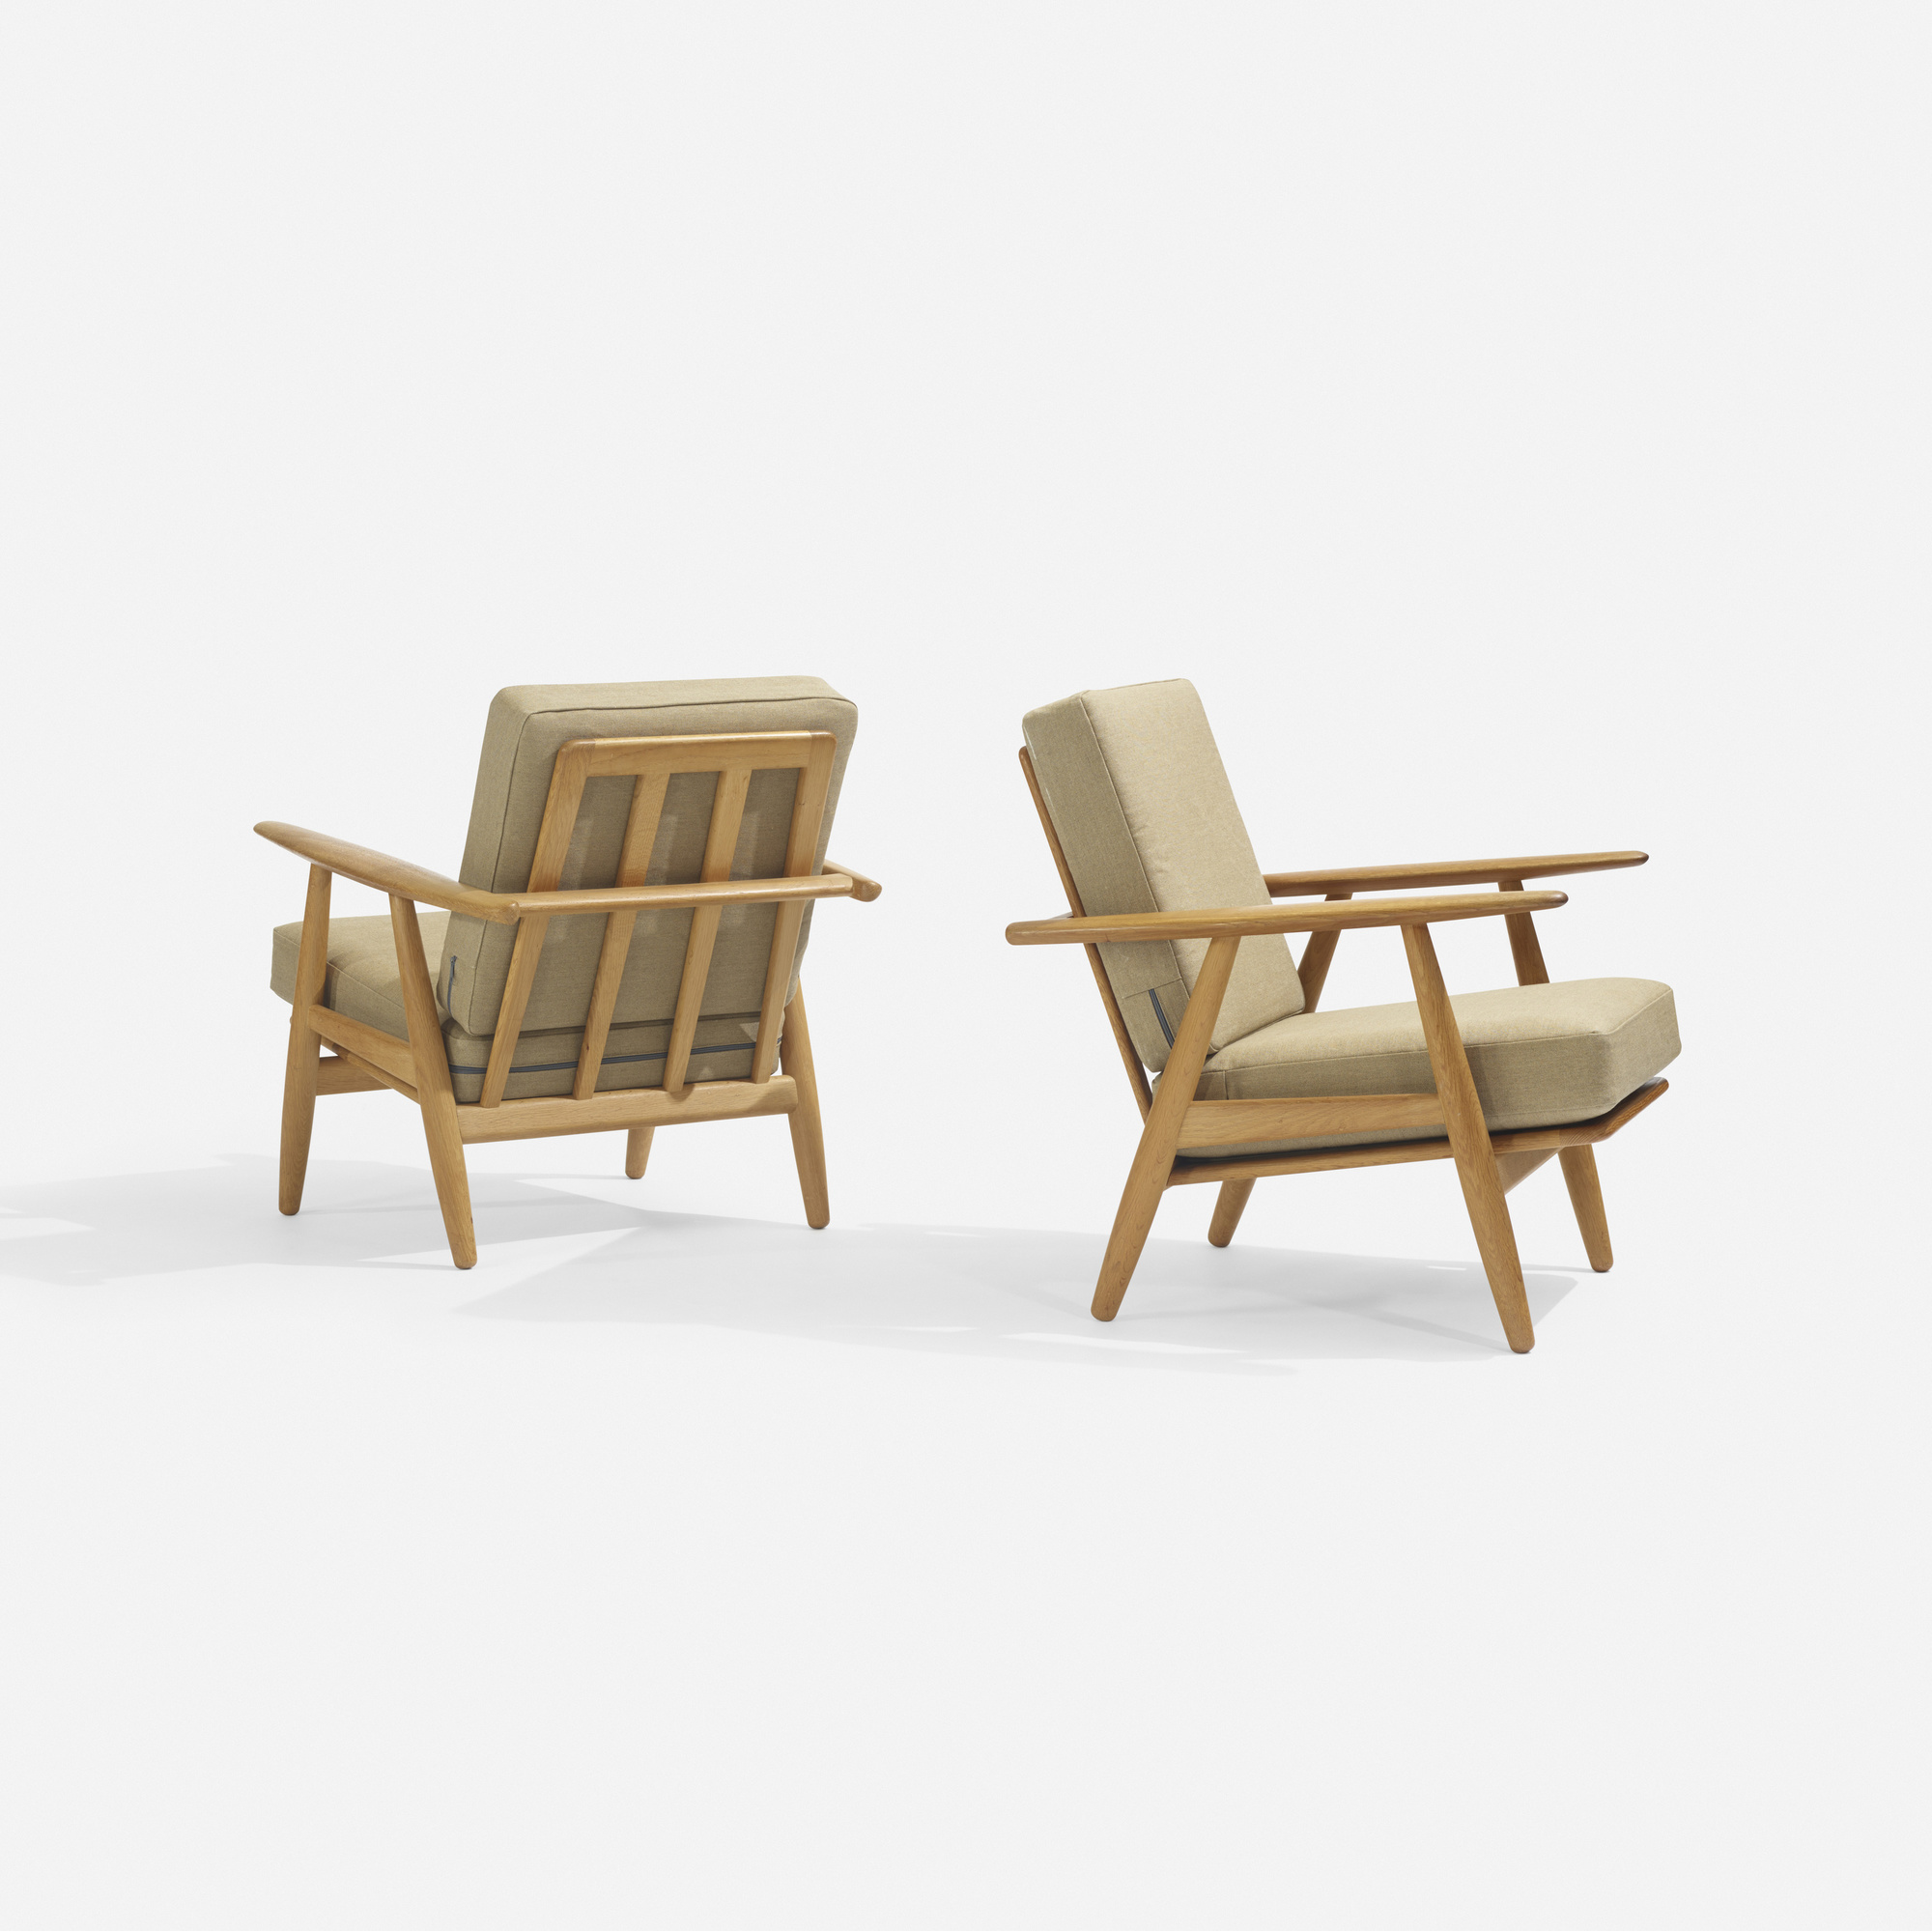 242: Hans J. Wegner / lounge chairs model GE240, pair (1 of 4)